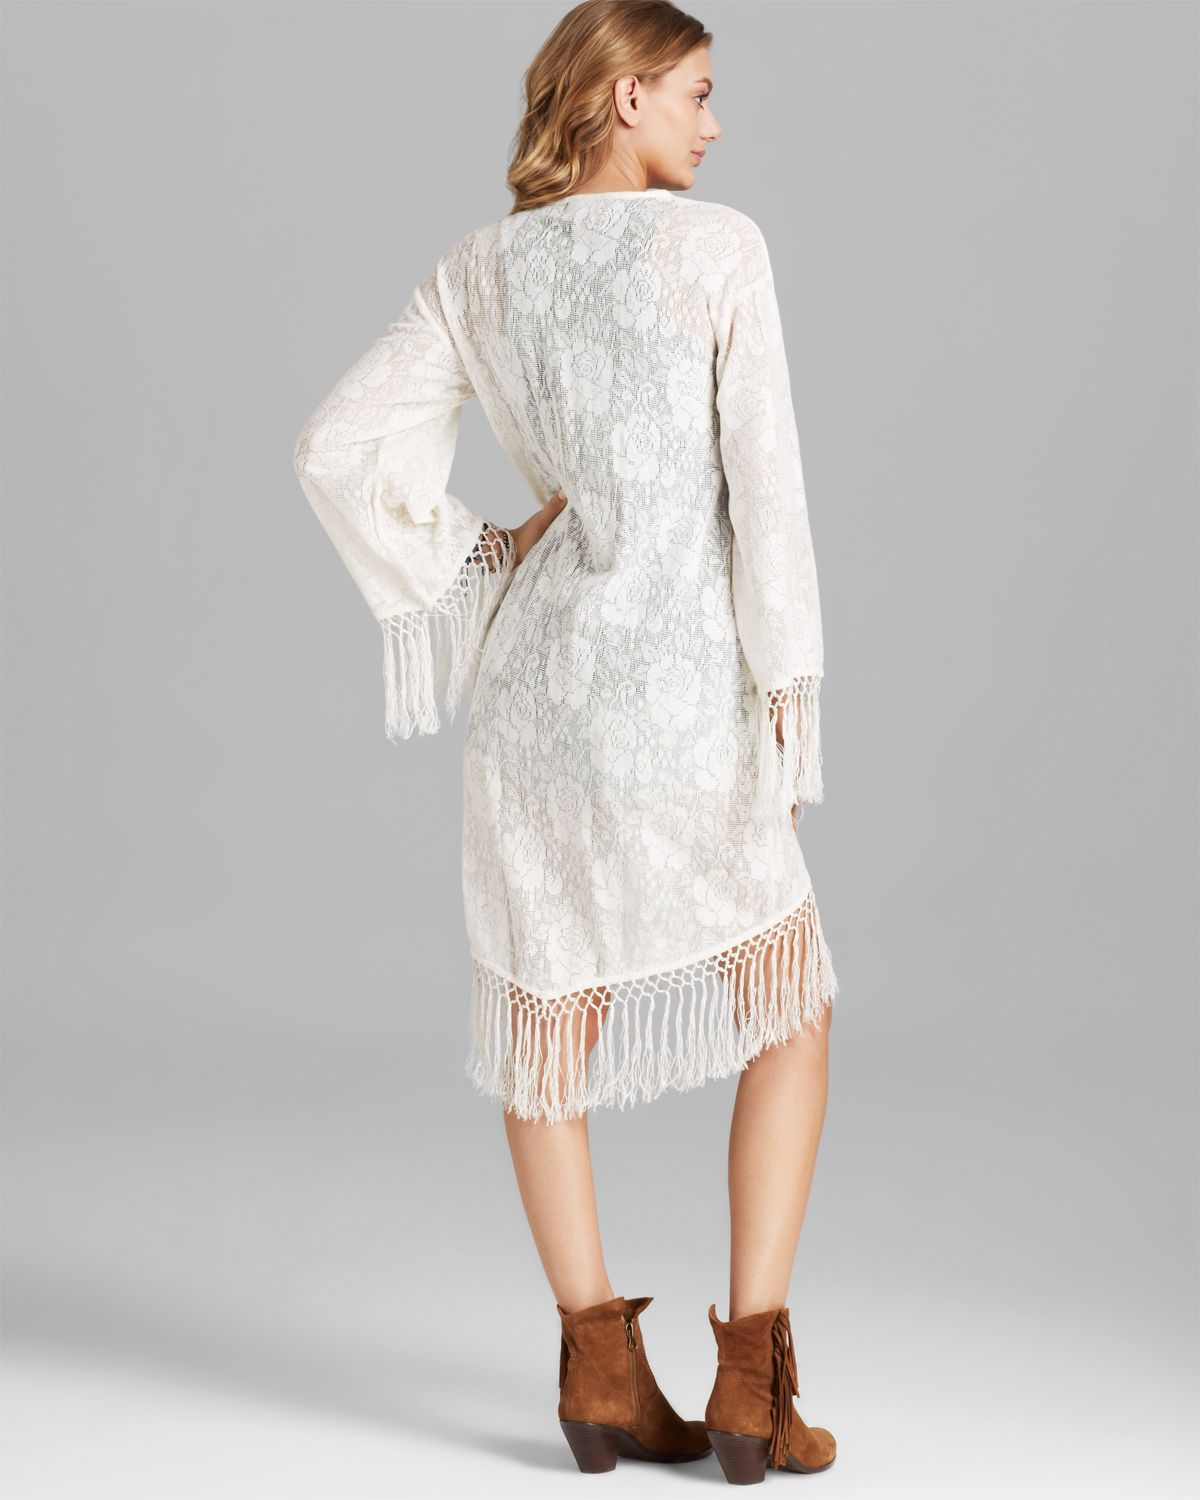 Minkpink Kimono Cardigan - Lace Fringe in Natural | Lyst